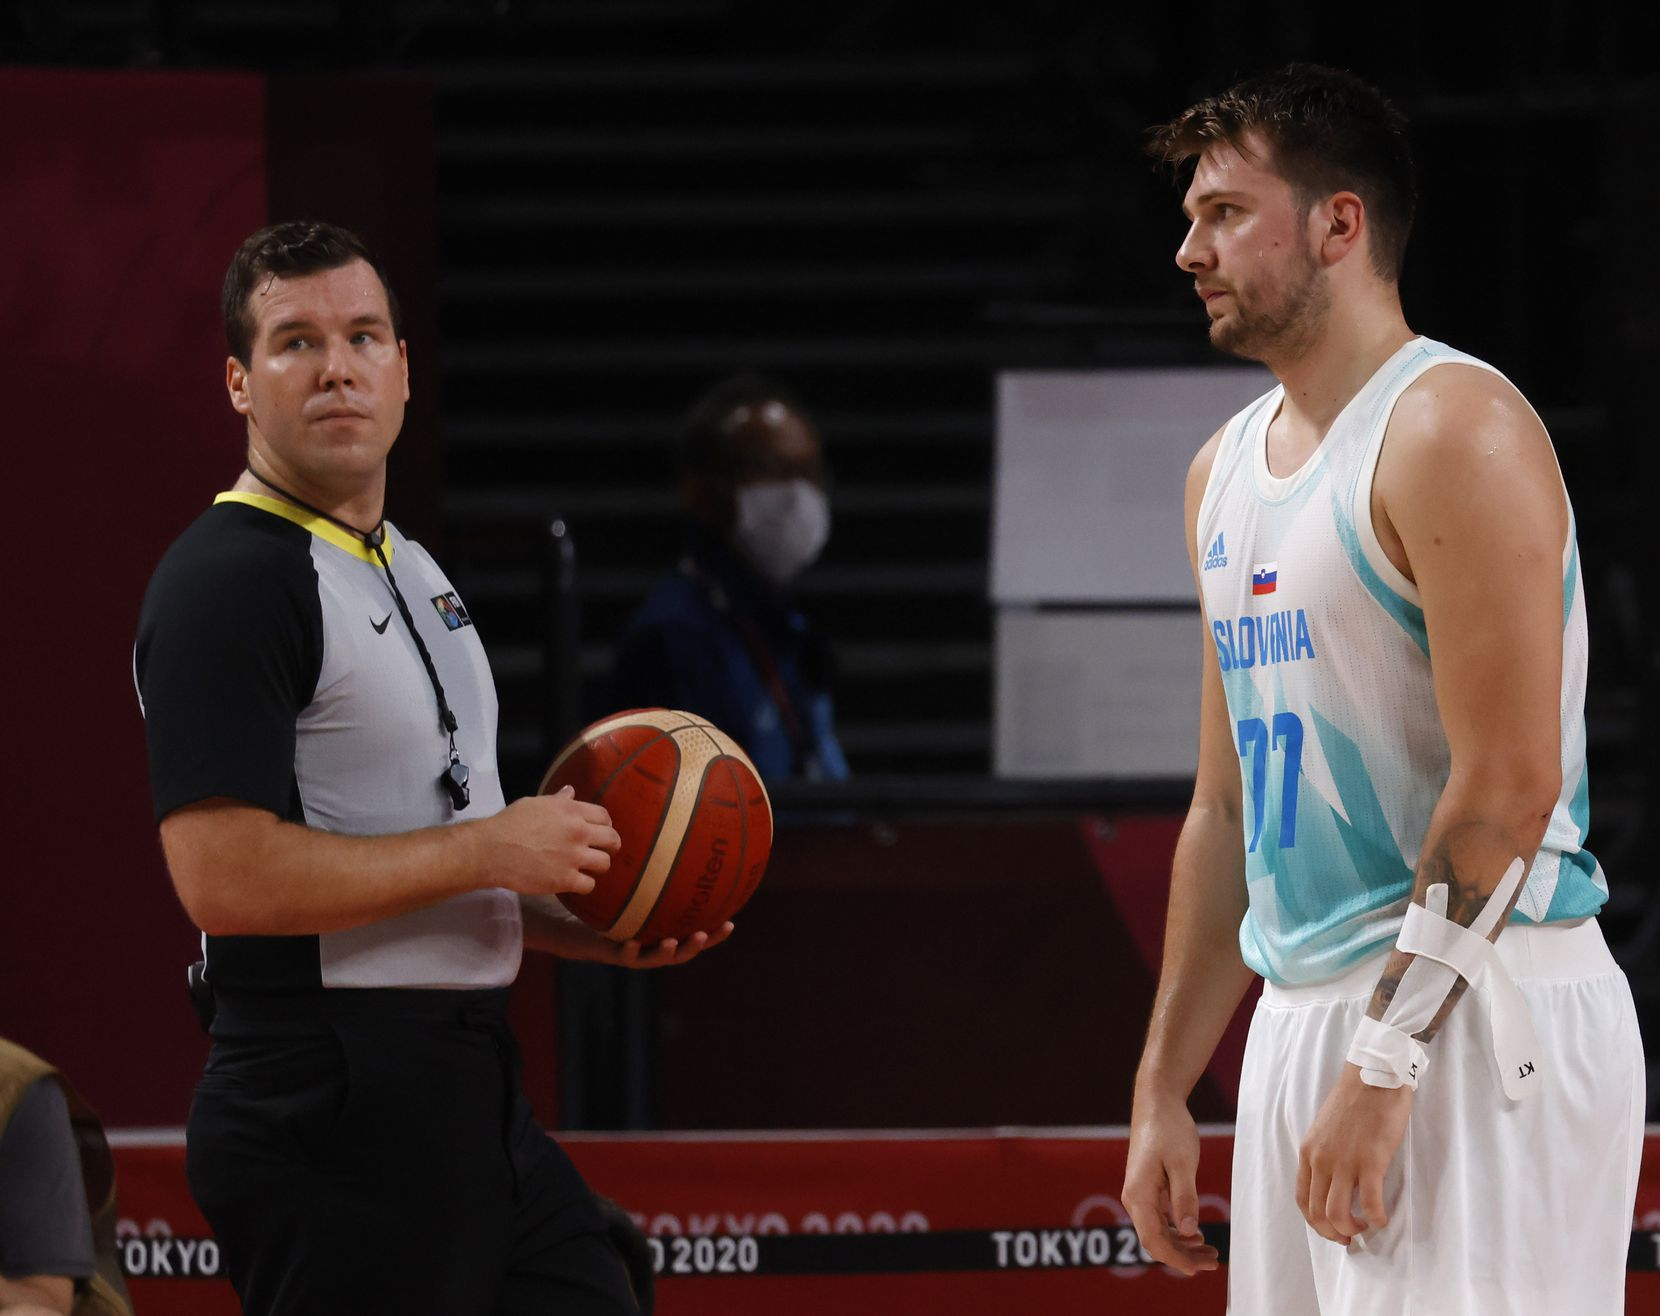 Slovenia's Luka Doncic (77) stares in the direction of the official after a play in a game against Australia during the second quarter of play in the bronze medal basketball game at the postponed 2020 Tokyo Olympics at Saitama Super Arena, on Saturday, August 7, 2021, in Saitama, Japan. (Vernon Bryant/The Dallas Morning News)